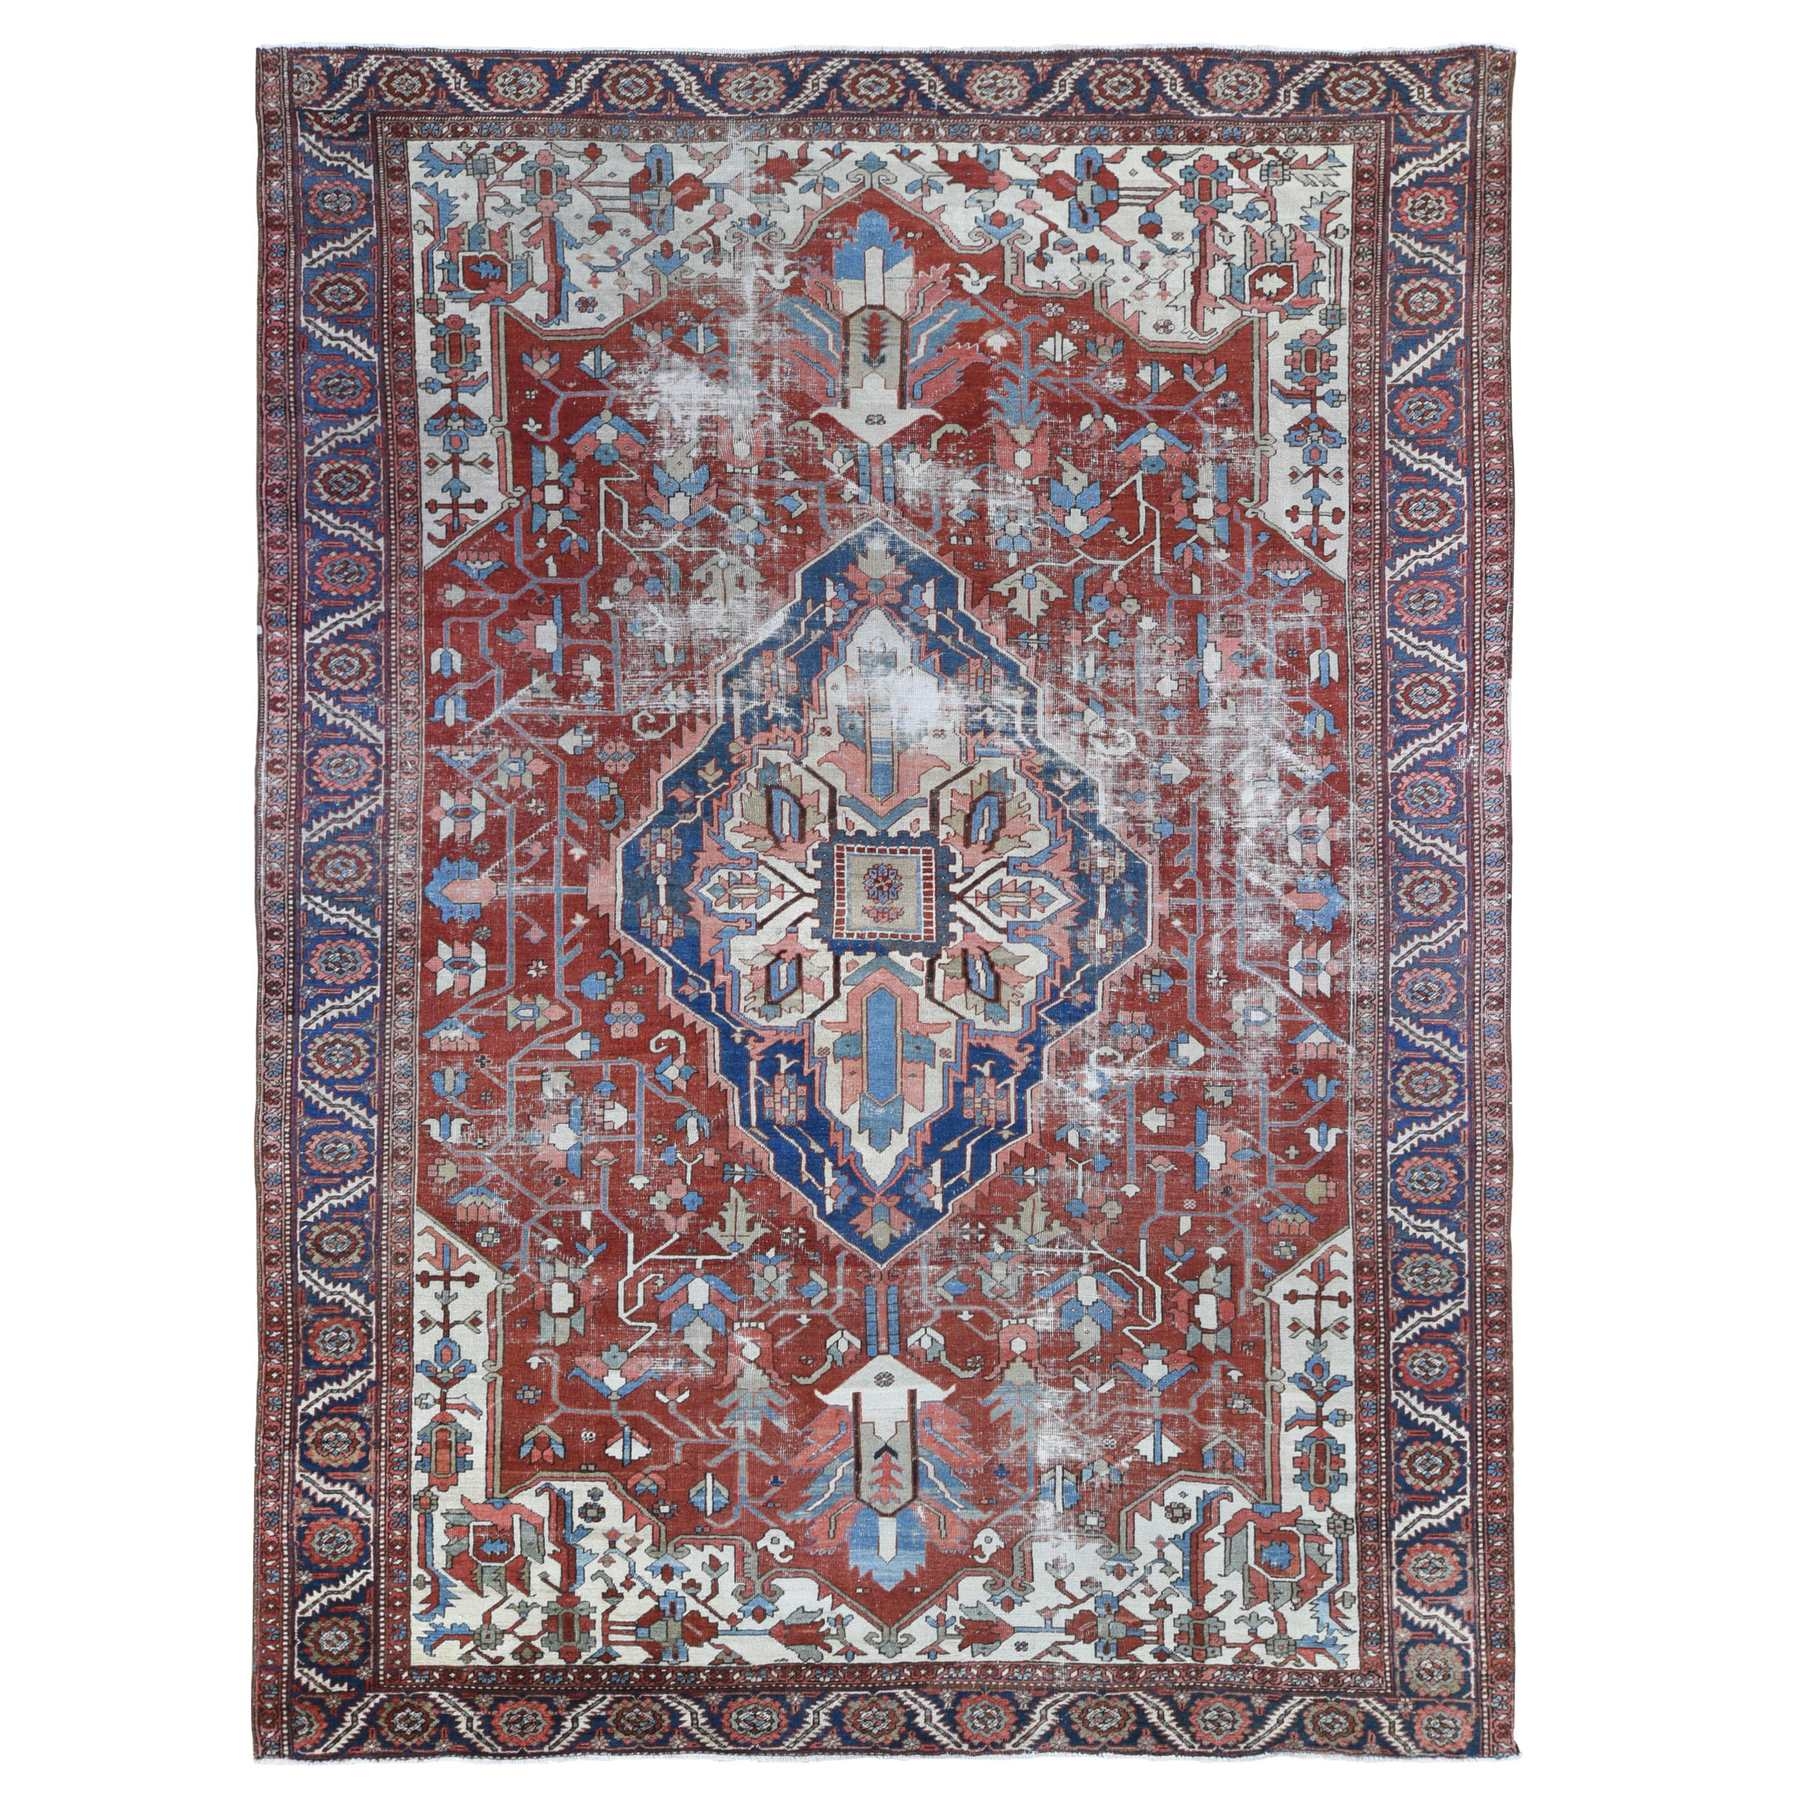 Antique Collection Hand Knotted Red Rug No: 1133862